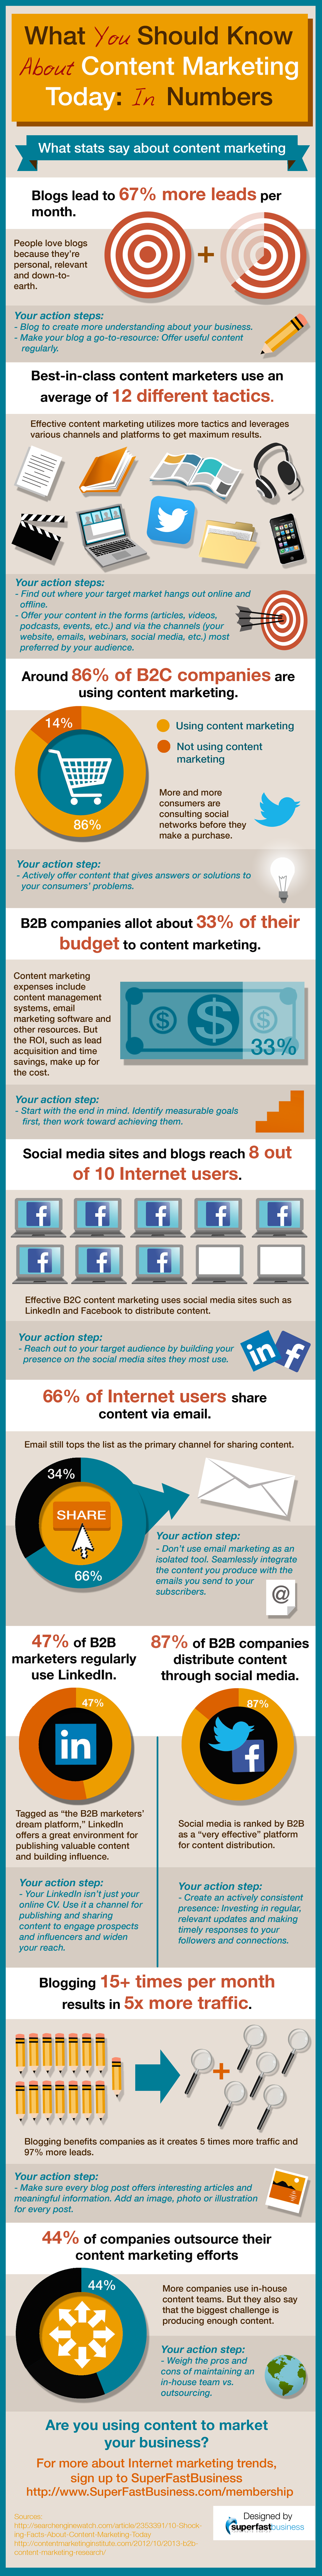 What You Should Know About Content Marketing Today: In Numbers #infographic